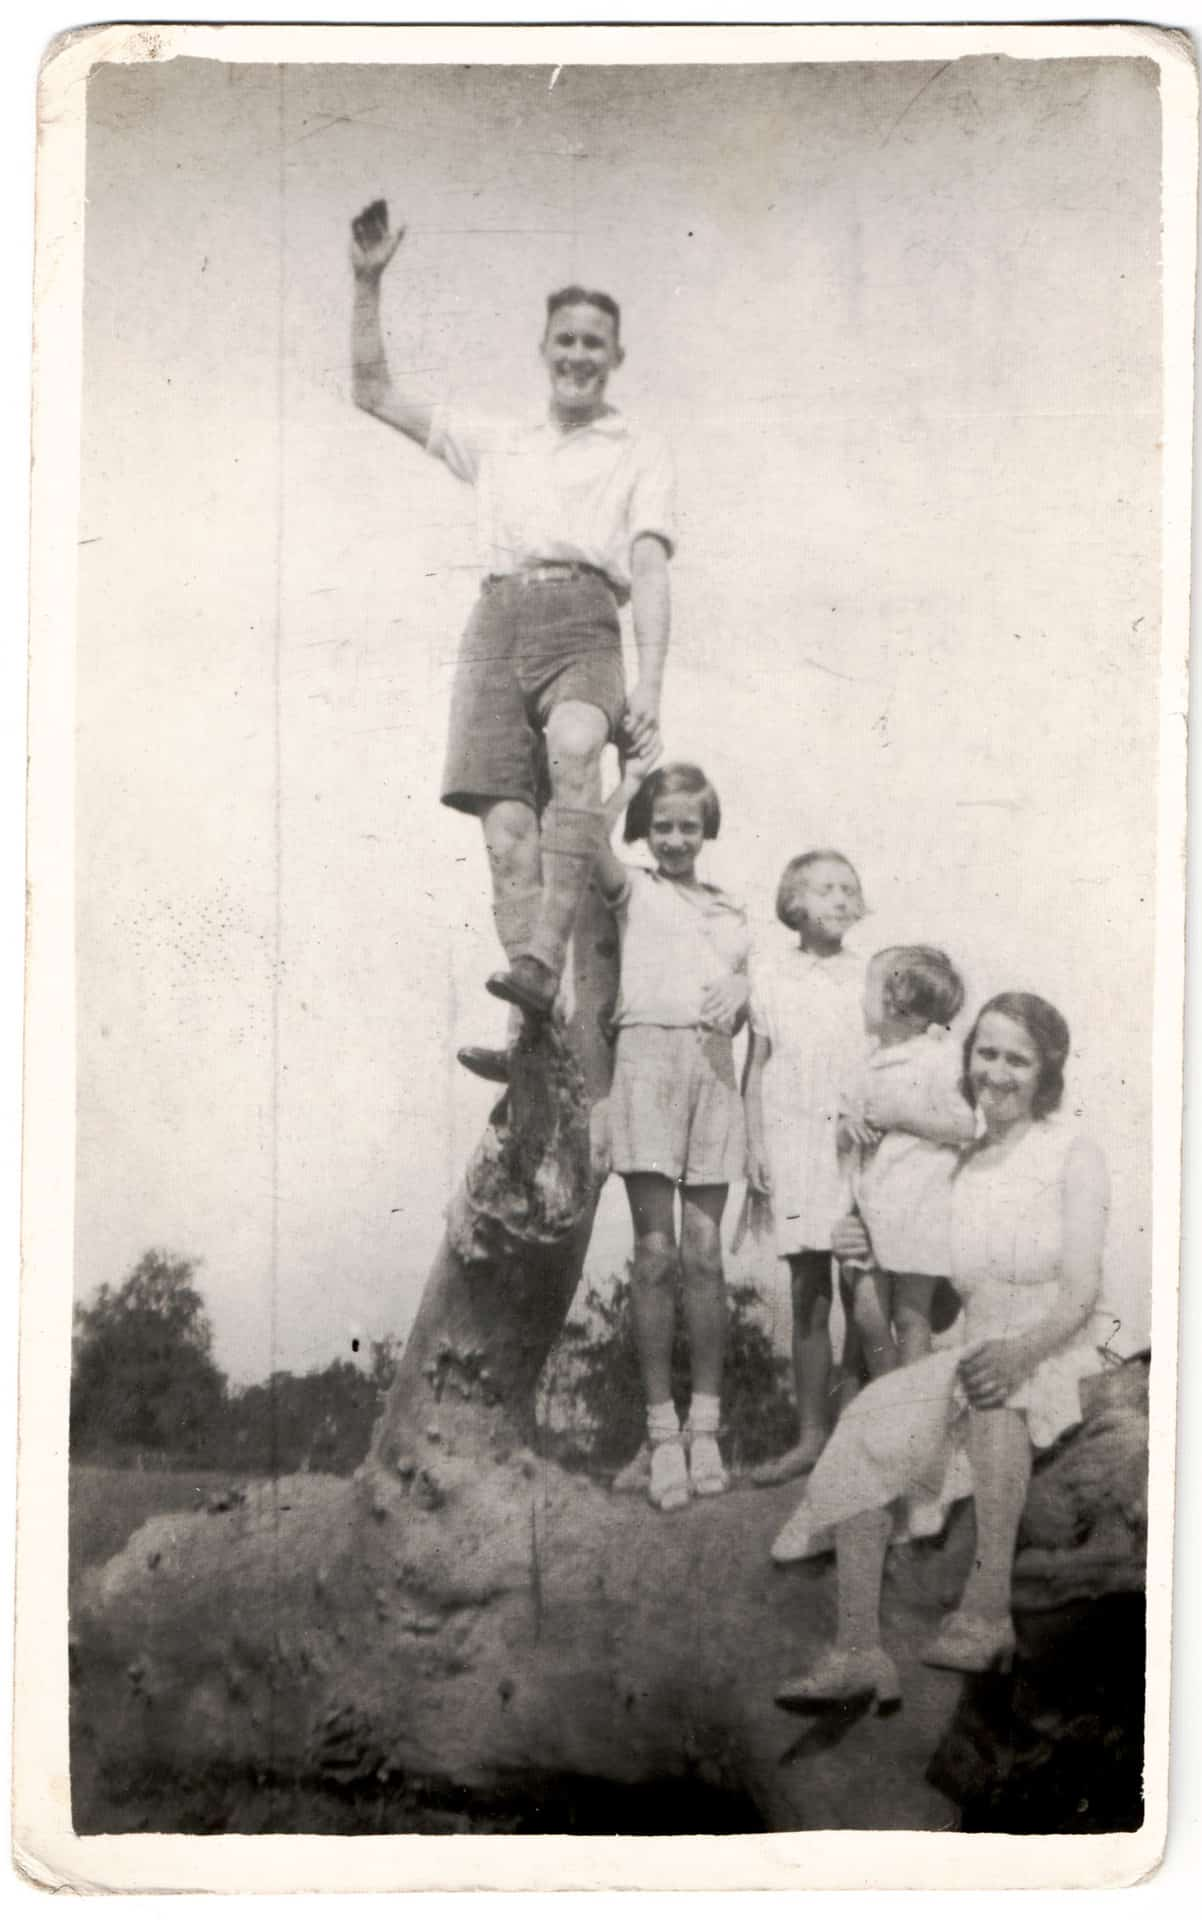 Dad with his sister and her children. Circa 1935/6